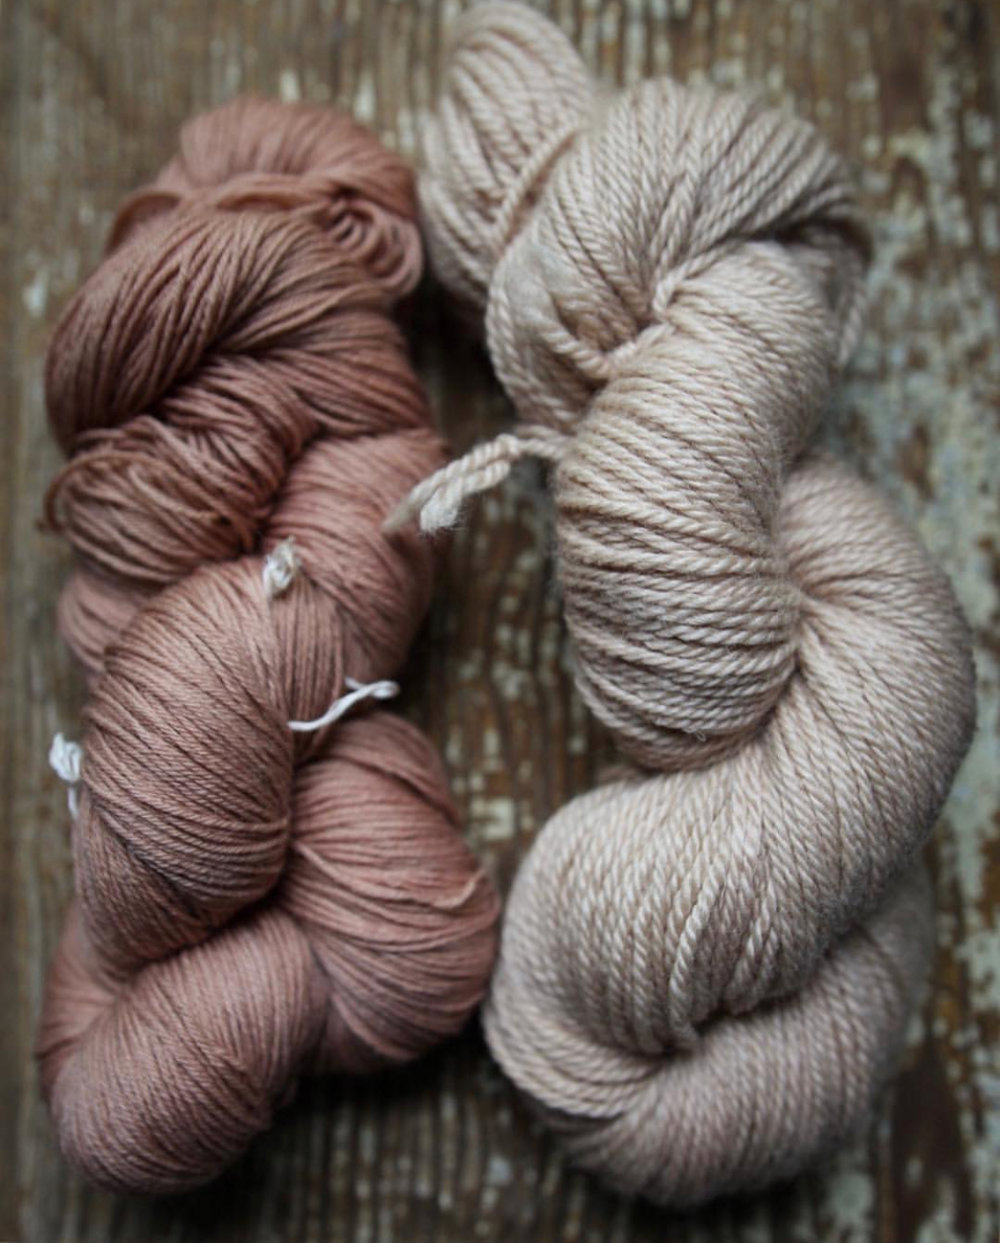 Left: superwash merino. Right: non-superwash merino. No mordant. Just slow processed in aluminum dye pots.